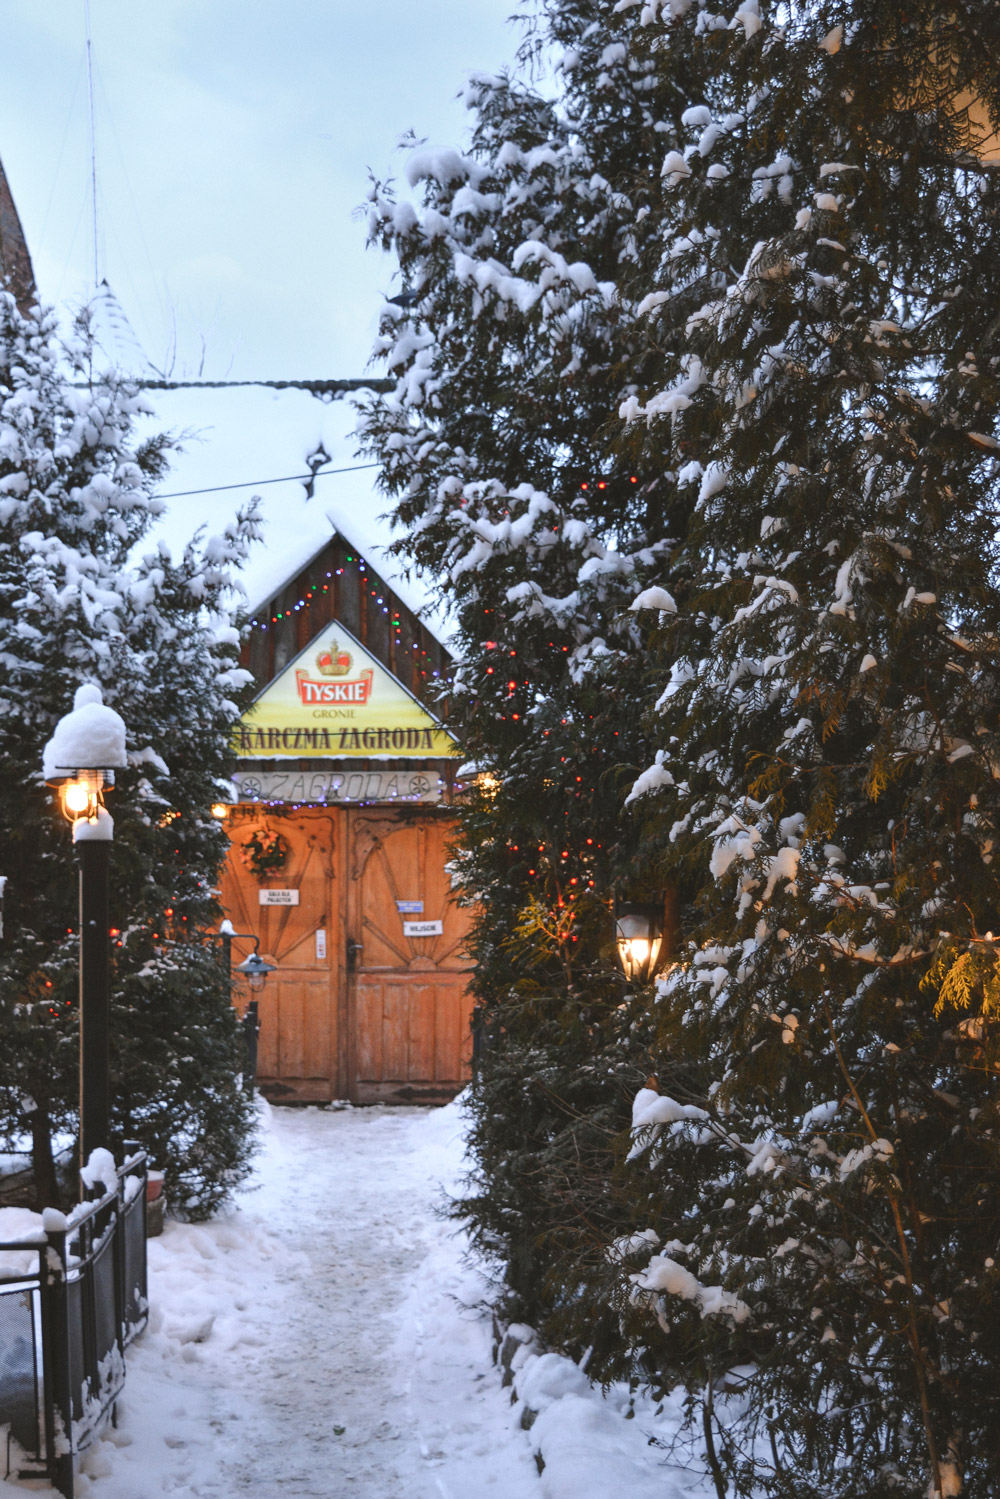 Quintessential Winter scene in Zakopane's fairytale town